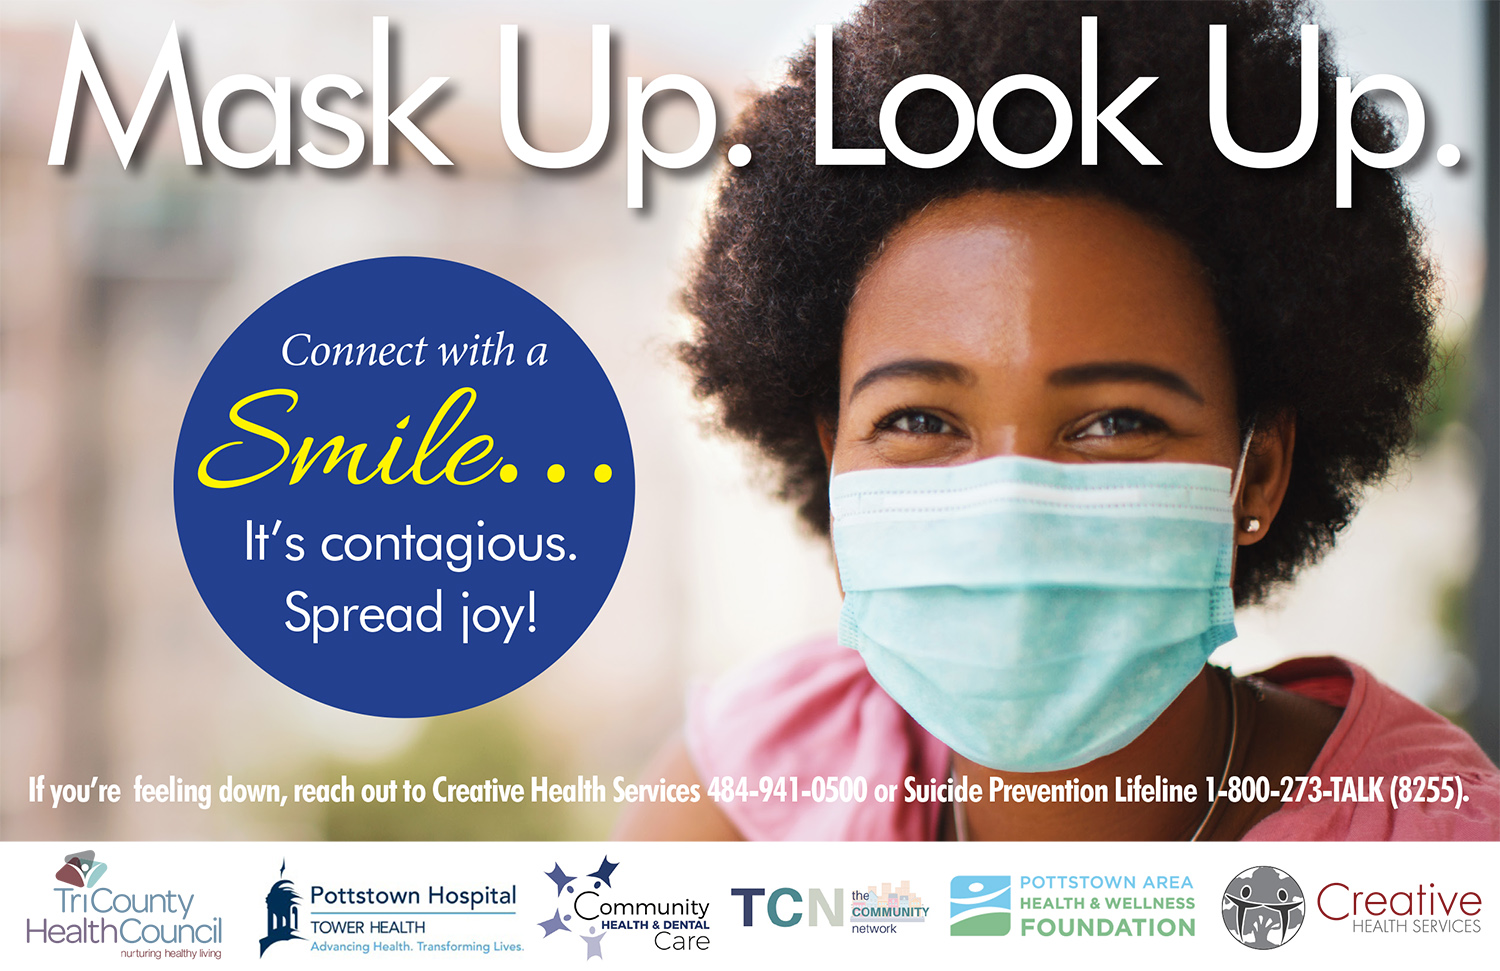 CONNECT WITH A SMILE CAMPAIGN-Young Female